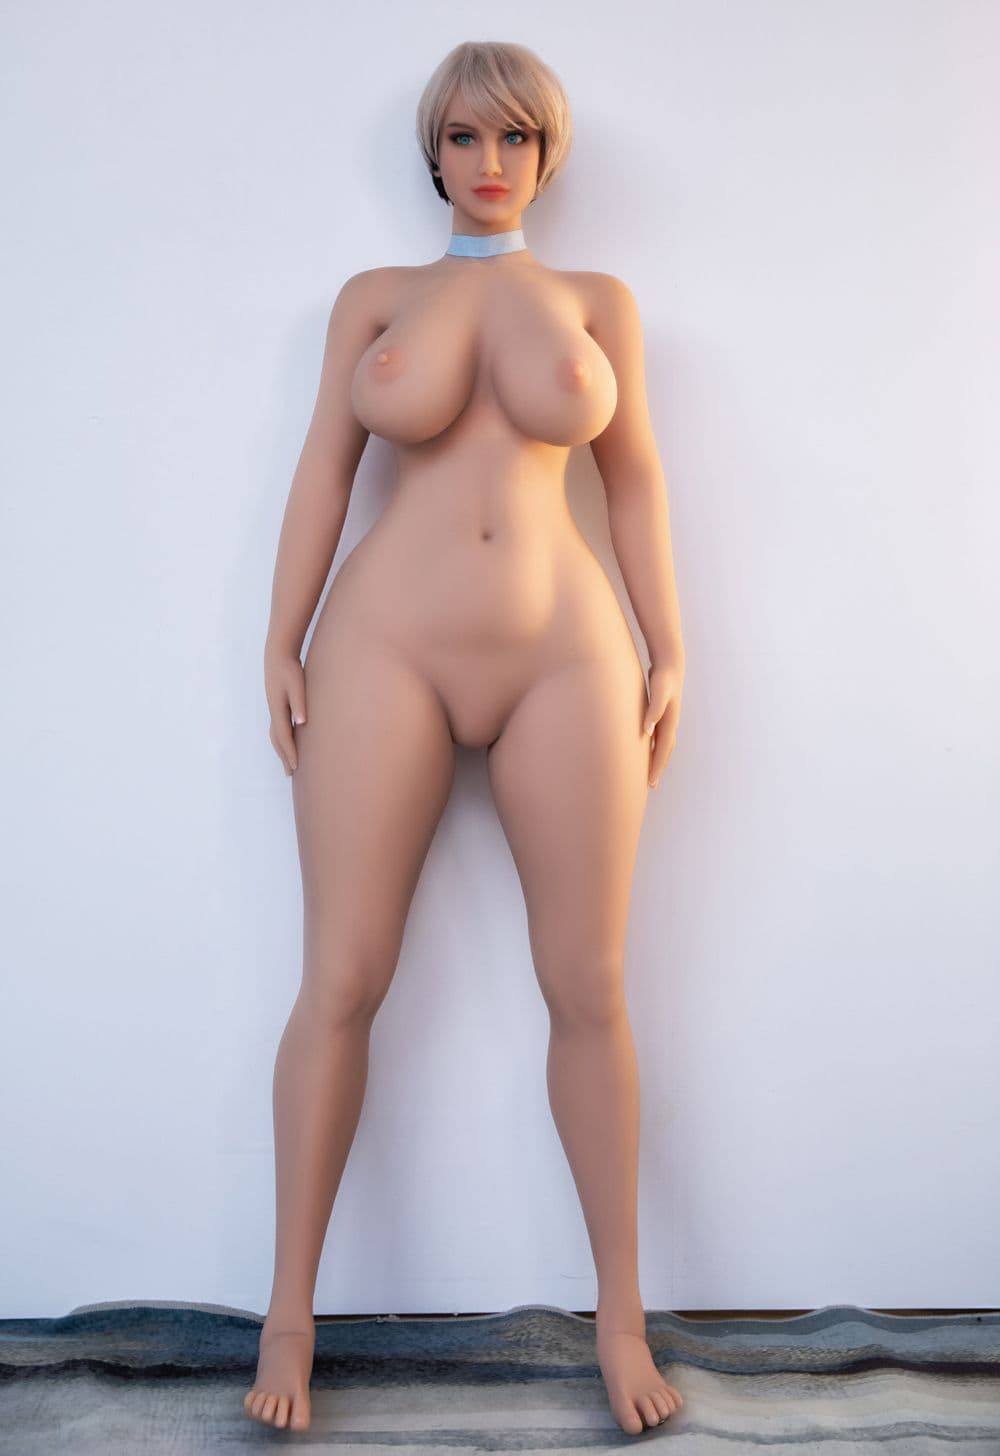 lonnie 164cm 5ft5 blonde curvy hr big boobs tpe sex doll(9)